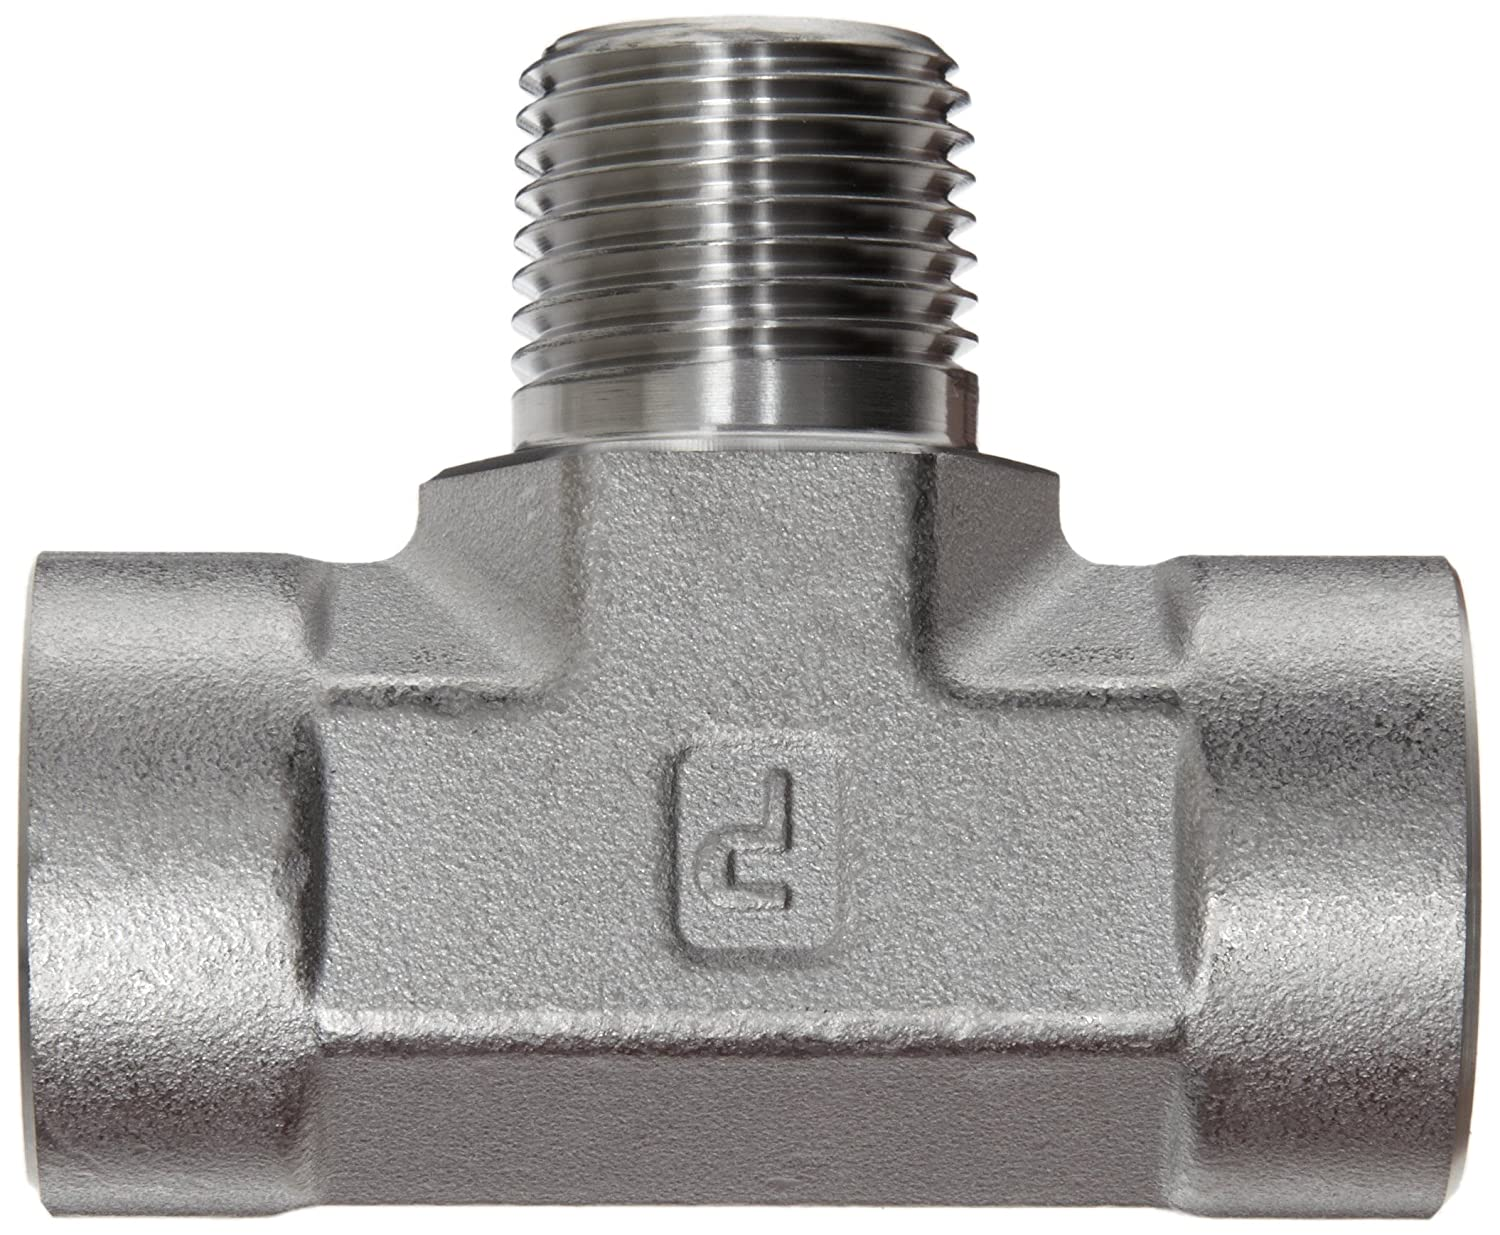 Parker Stainless Steel 316 Pipe Fitting Branch Tee 1//4 NPT Female x 1//4 NPT Male x 1//4 NPT Female 1//4 NPT Female x 1//4 NPT Male x 1//4 NPT Female Parker Hannifin 4-4-4 MBT-SS